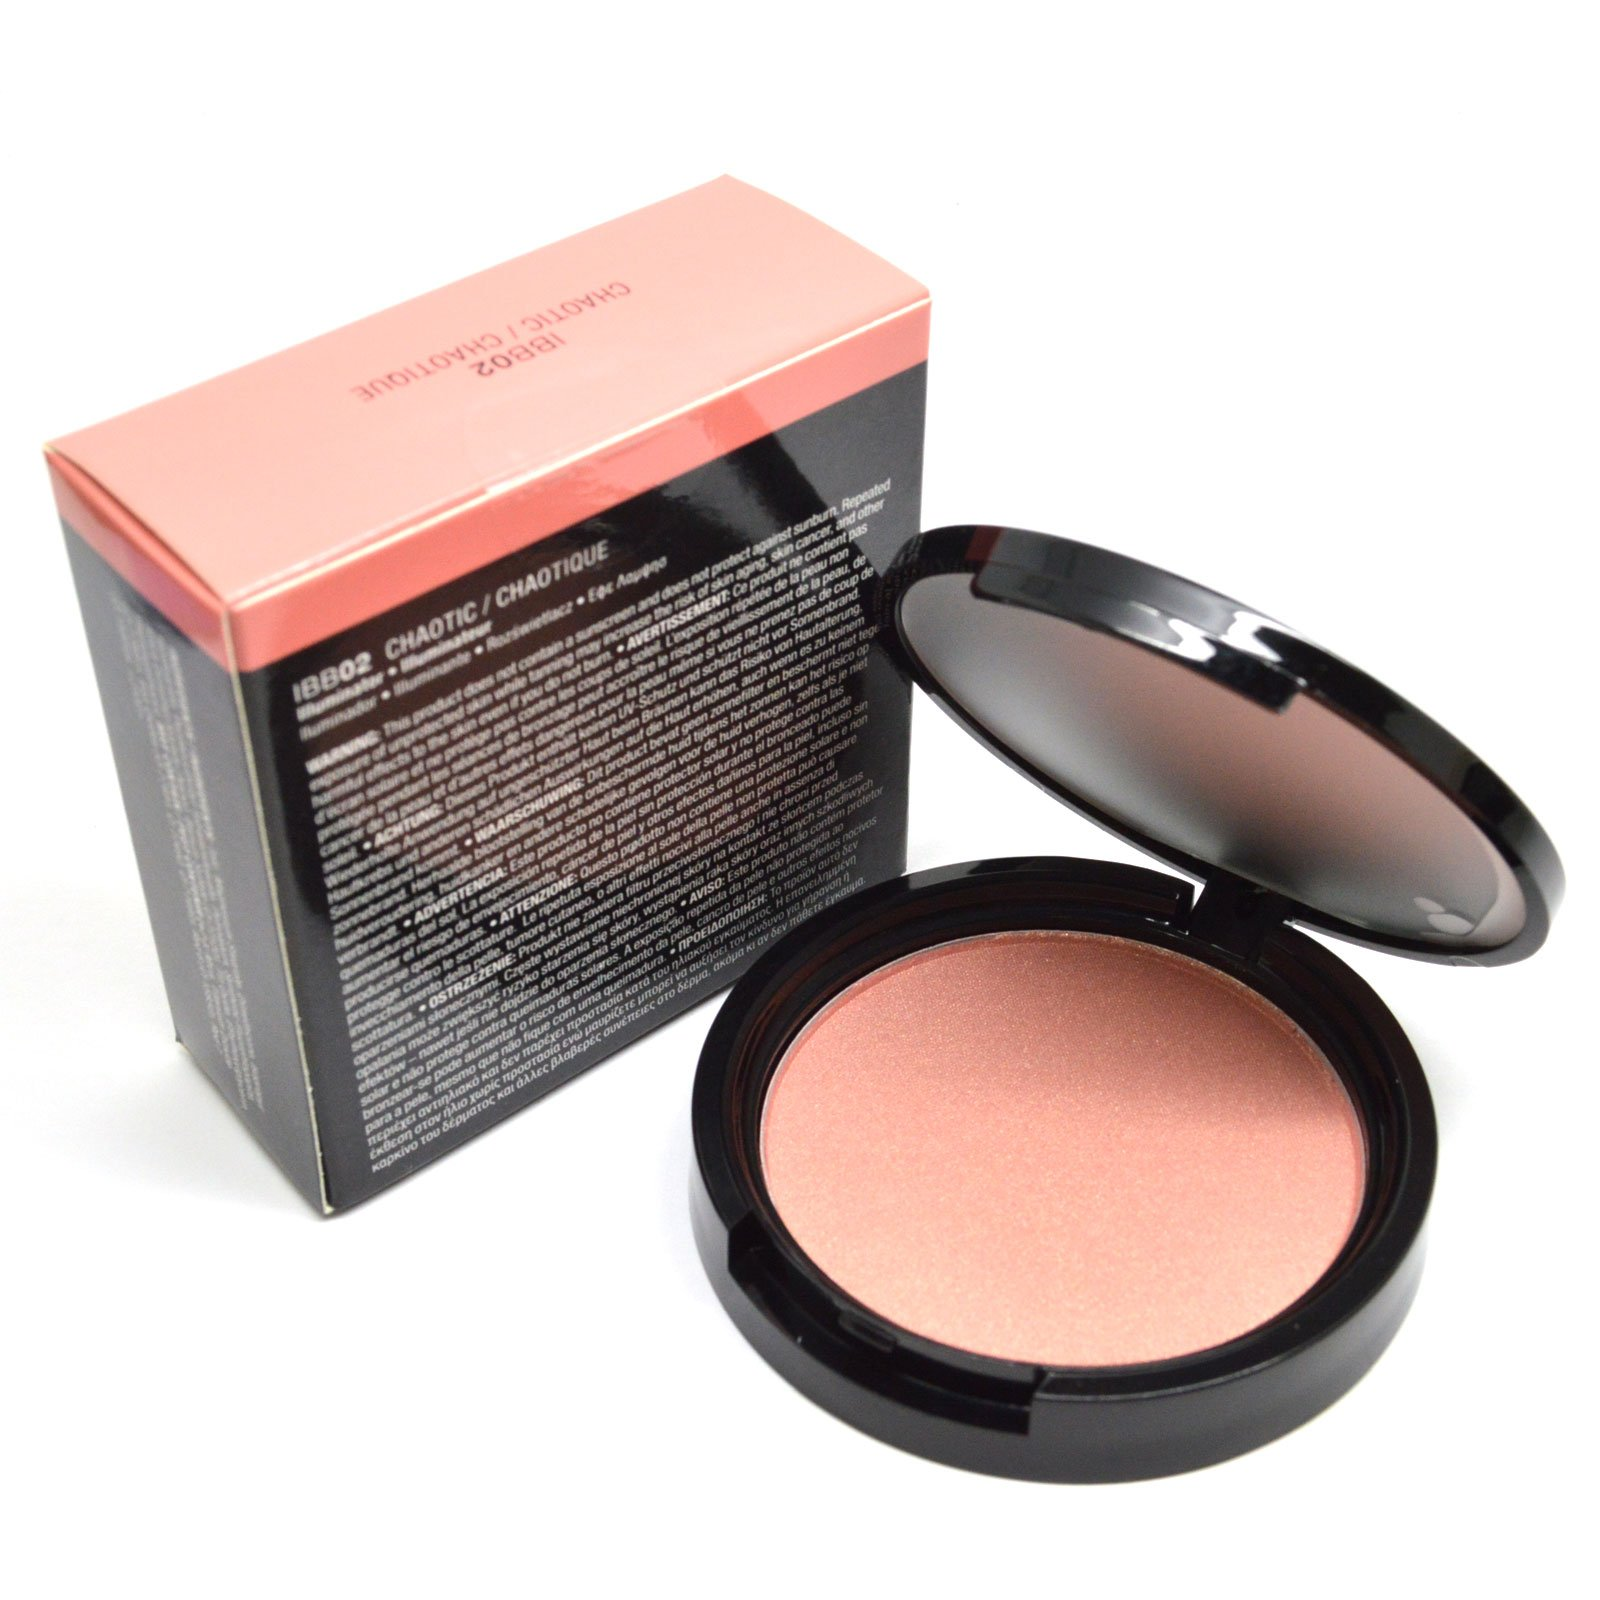 Women Cosmetic Illuminator Face and Body Bronzer 0.33oz / 9.5g Powder BeutiYo ! + Free Earring (IBB02 CHAOTIC)